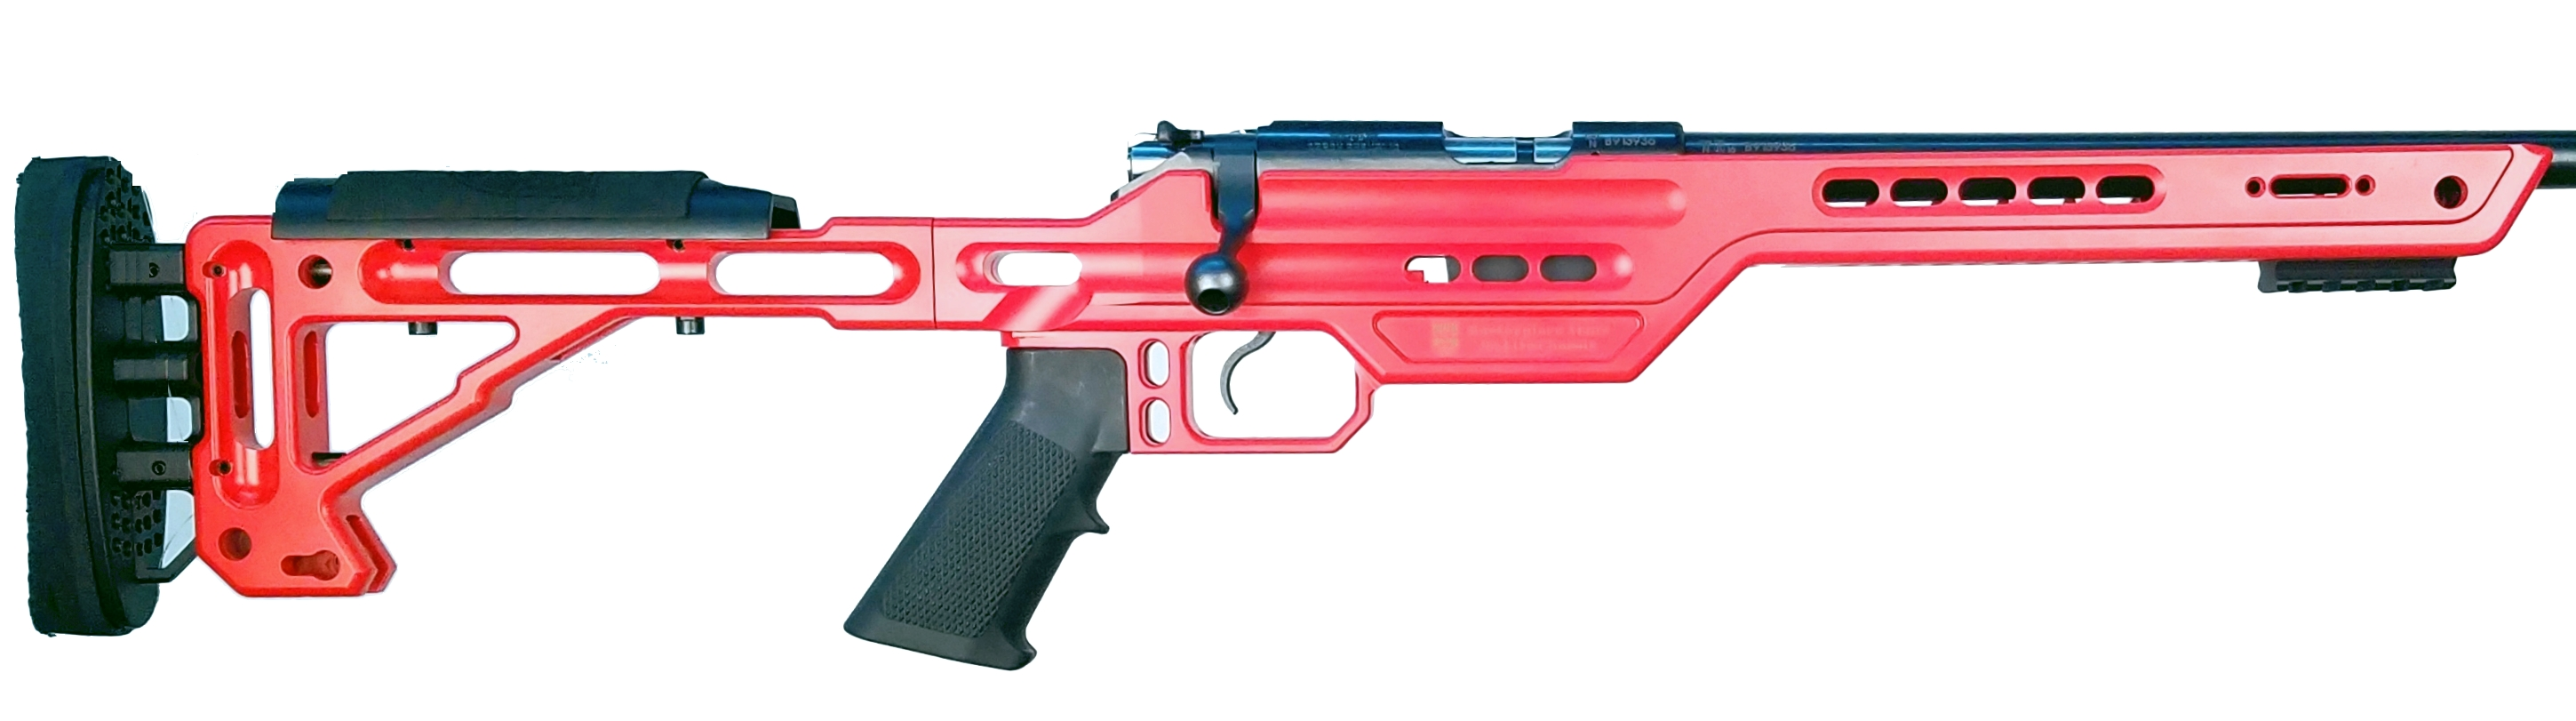 MPA BA CZ-455 Chassis Youth Model - MasterPiece Arms, Inc